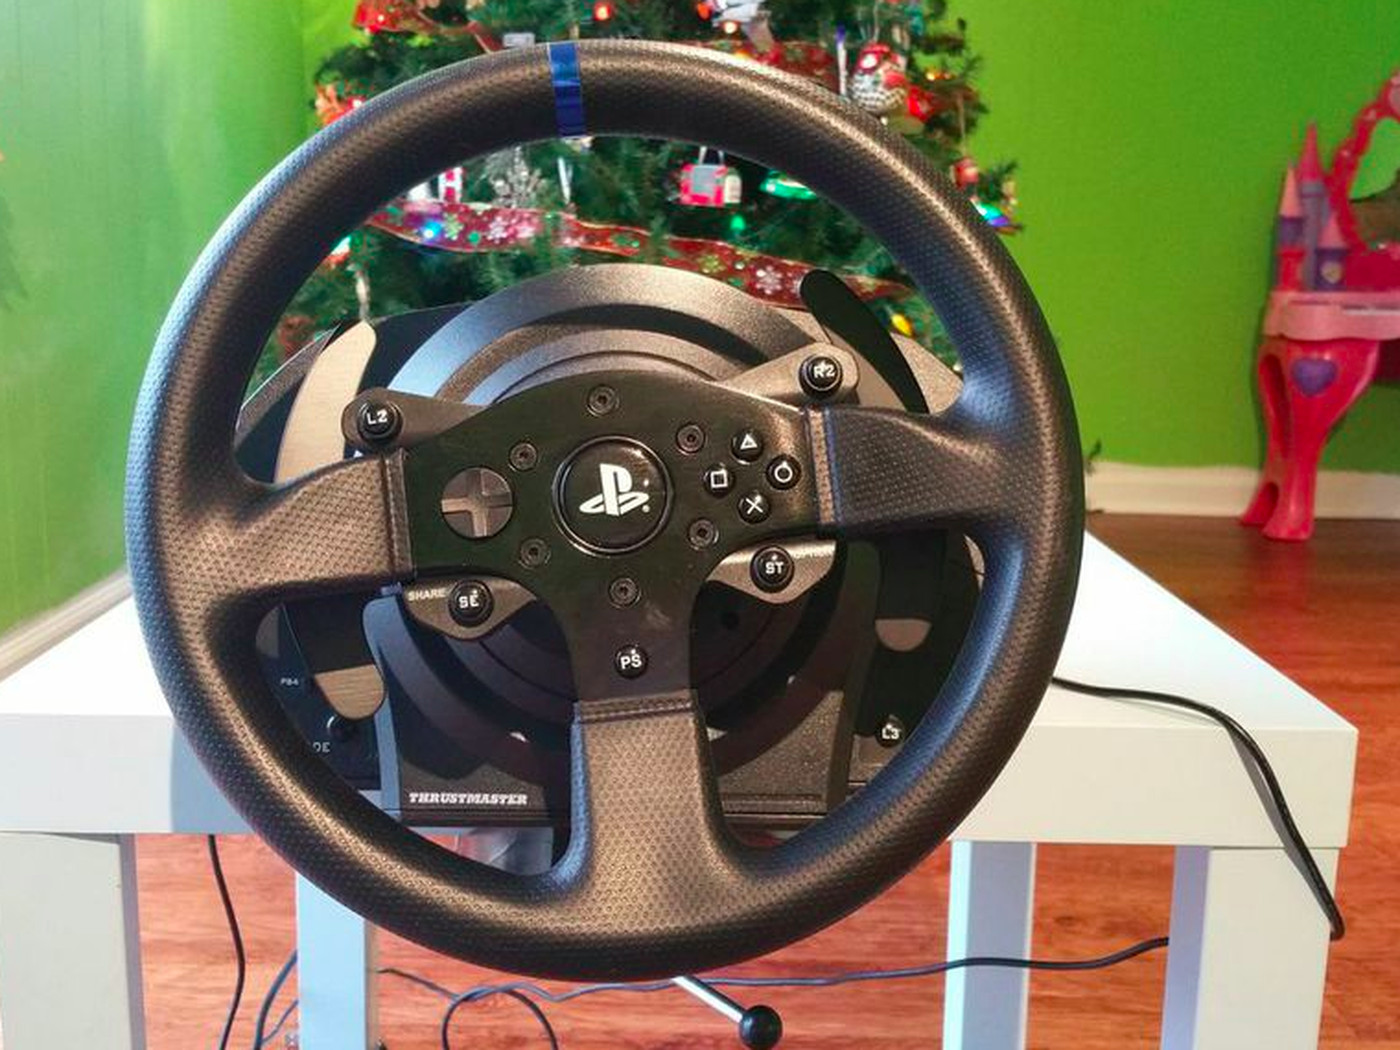 DriveClub is a better game with this $400 wheel, a $10 Ikea